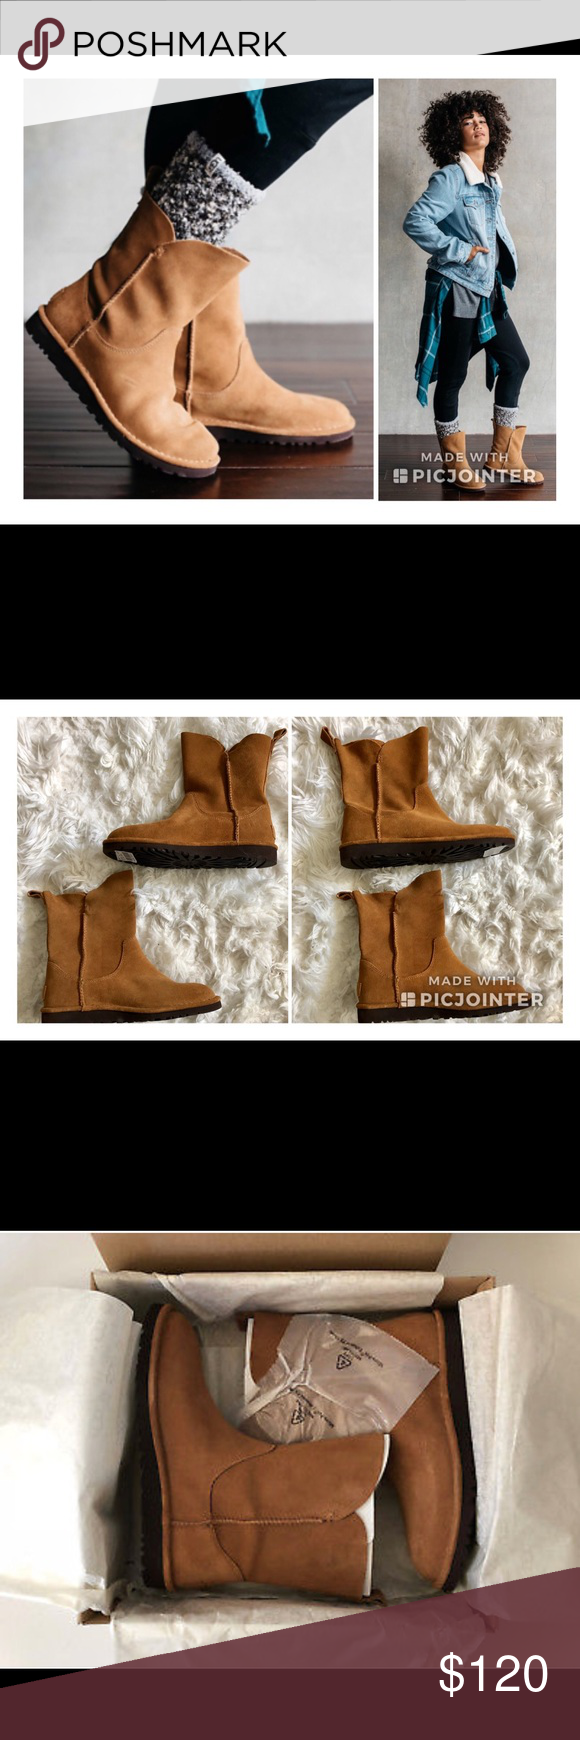 5a1f85b5f5d 🔥NWT UGG Alida Boots🔥 UGG Light as air, soft as ever, this Classic ...